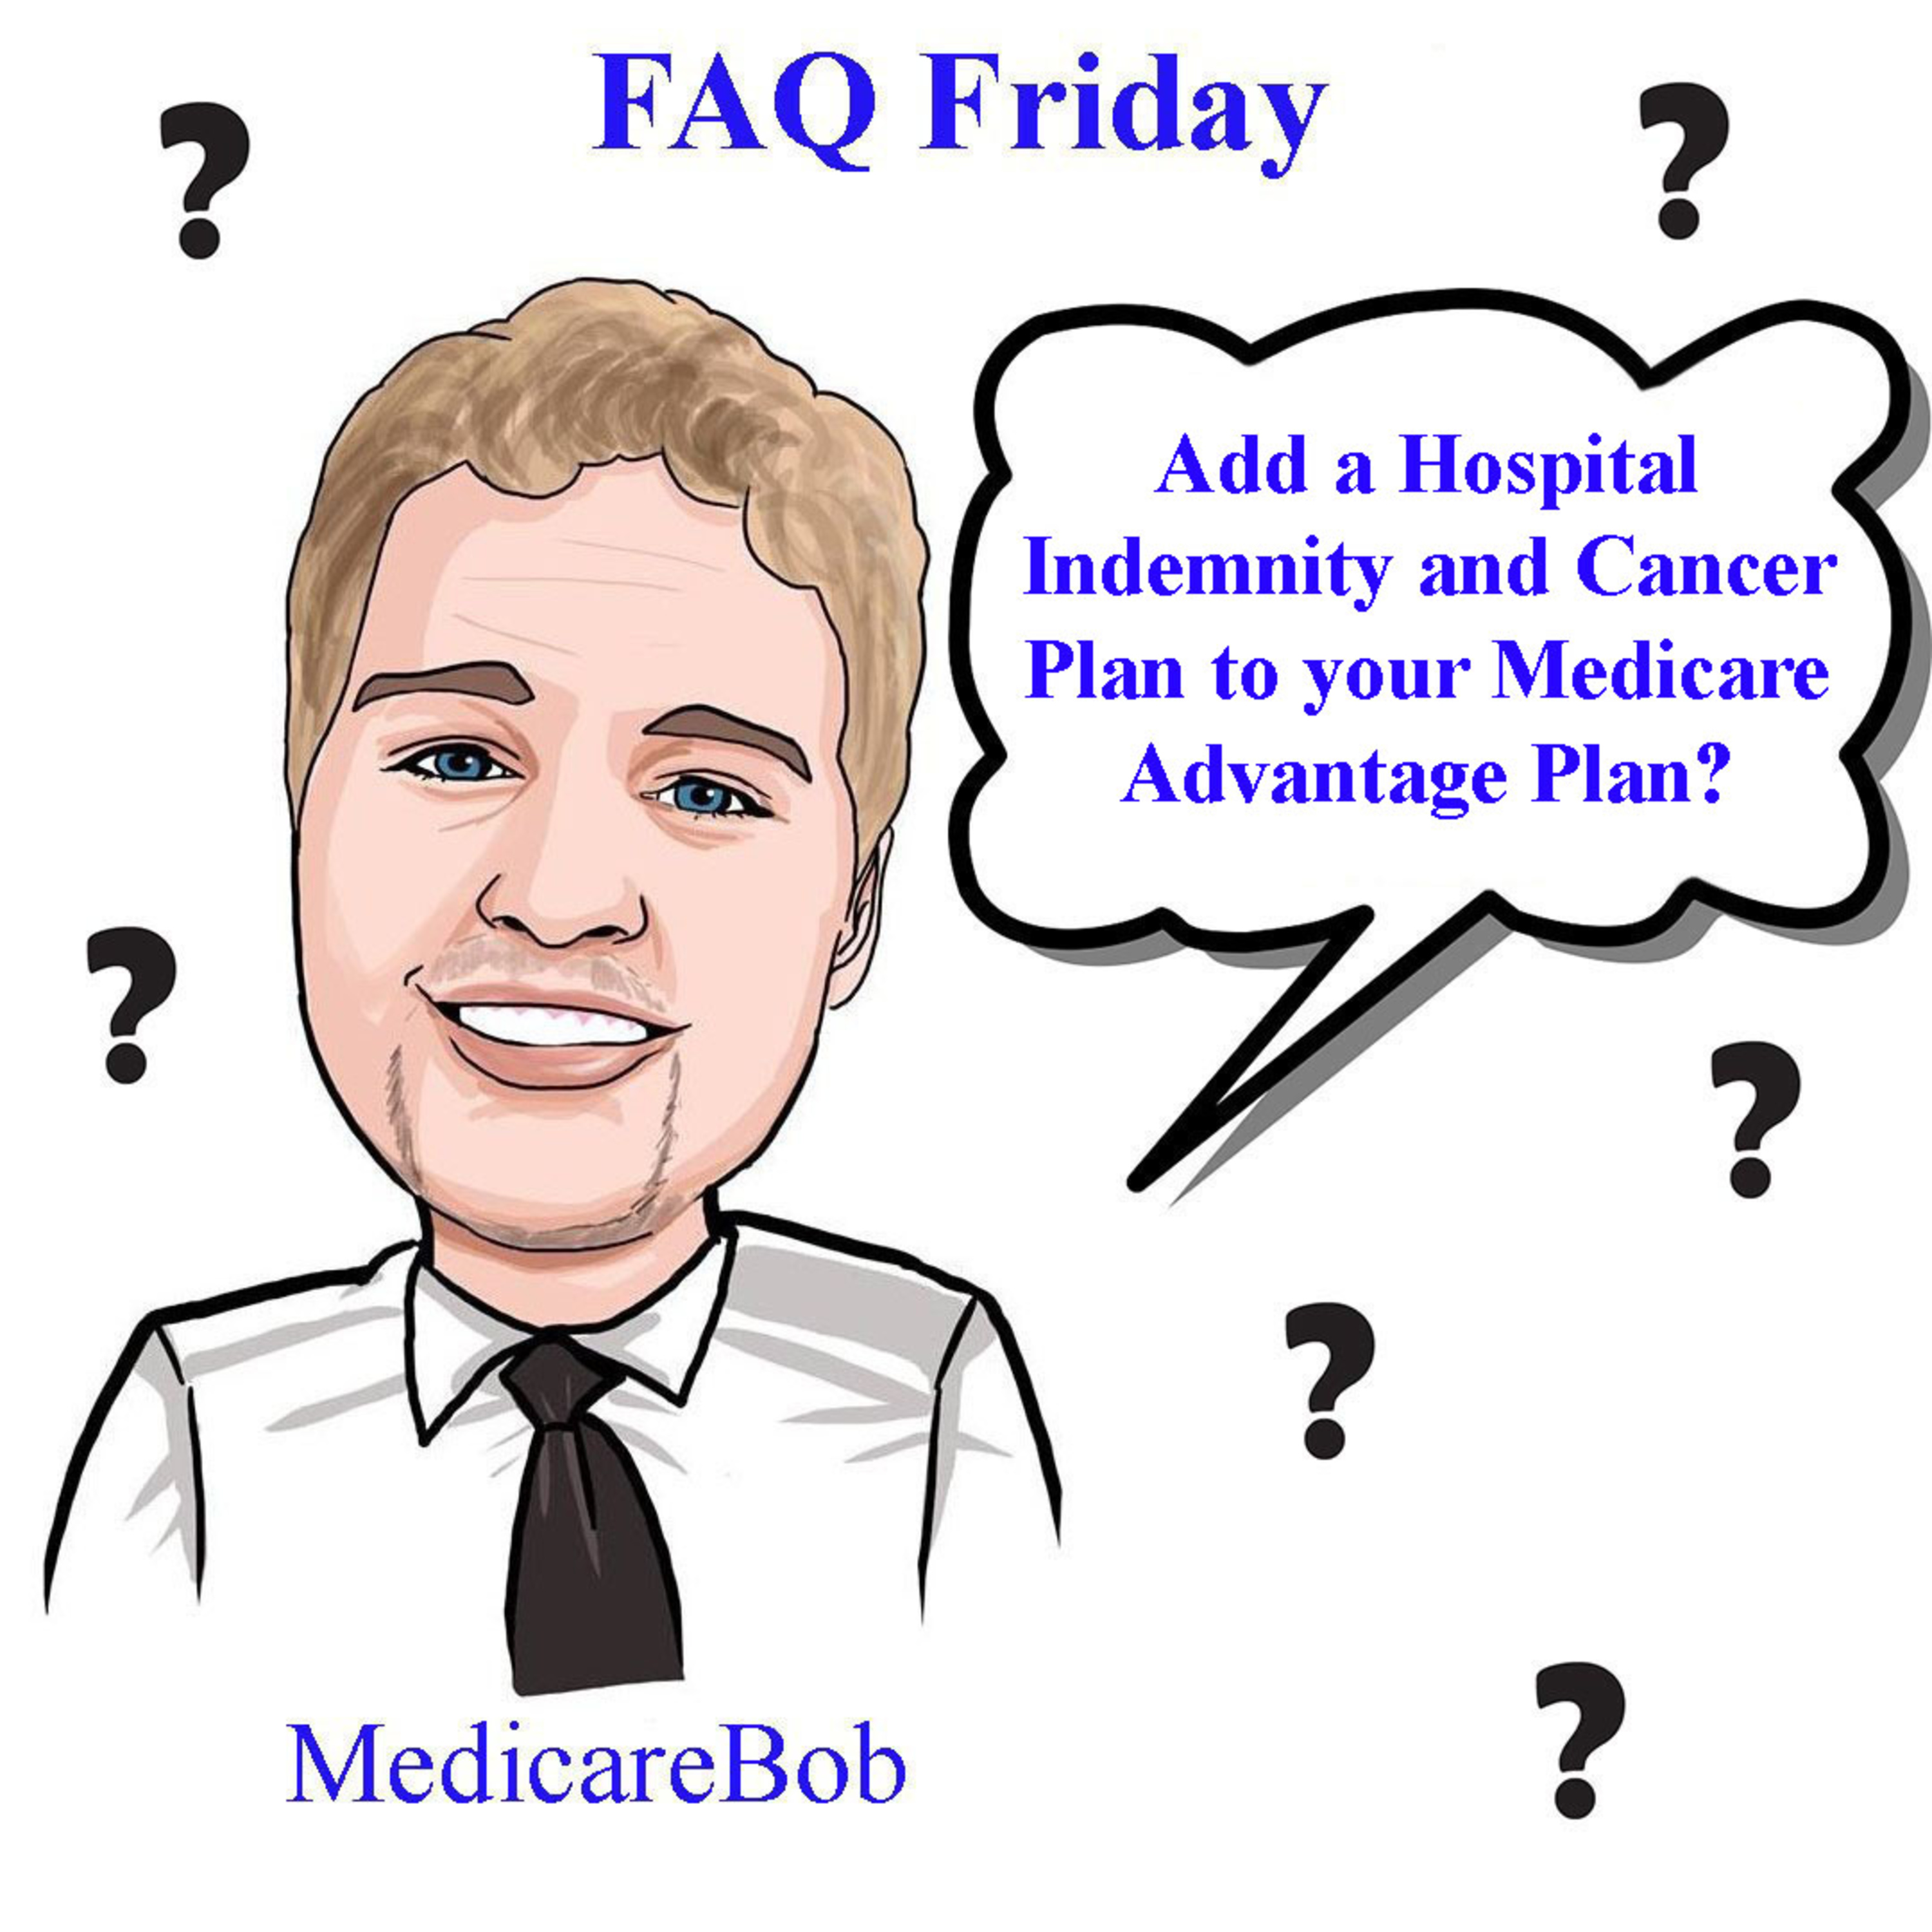 FAQ Friday: Benefits of a Hospital Indemnity Plan and a Cancer Policy